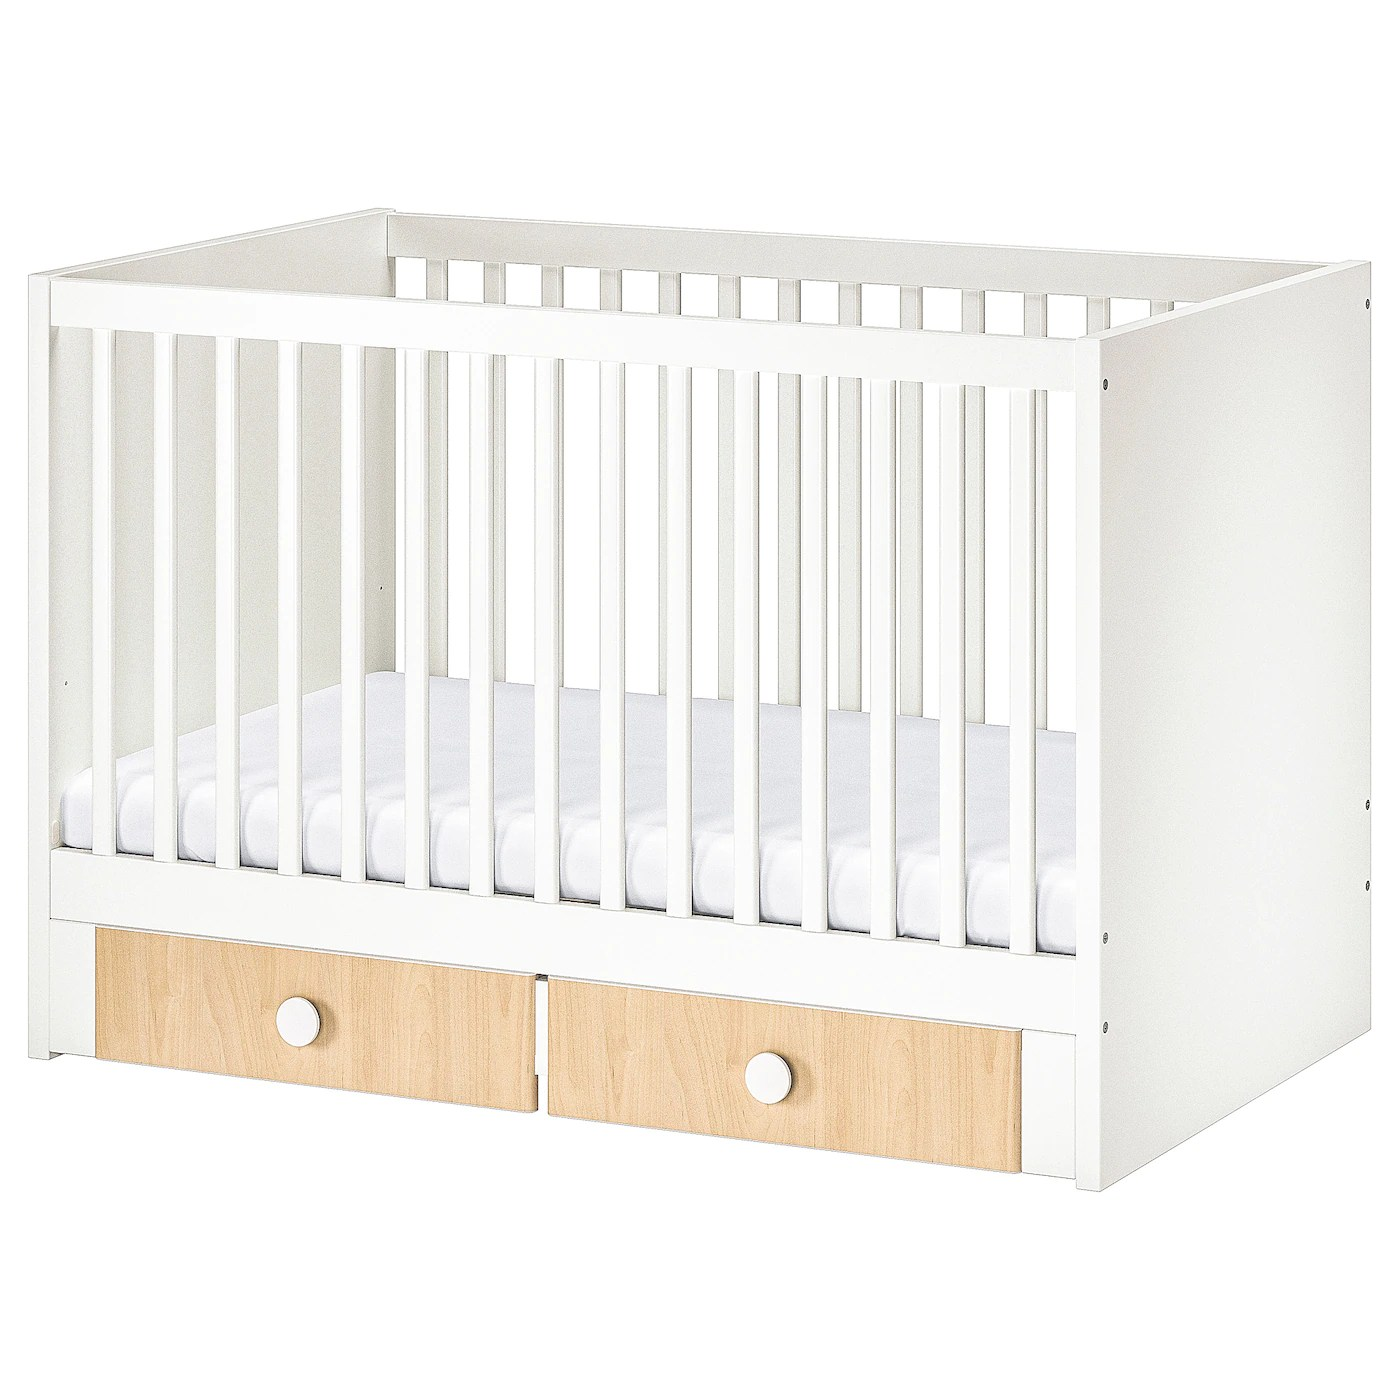 Cot Mattress 170 X 40 Cots Baby Cot Beds Ikea